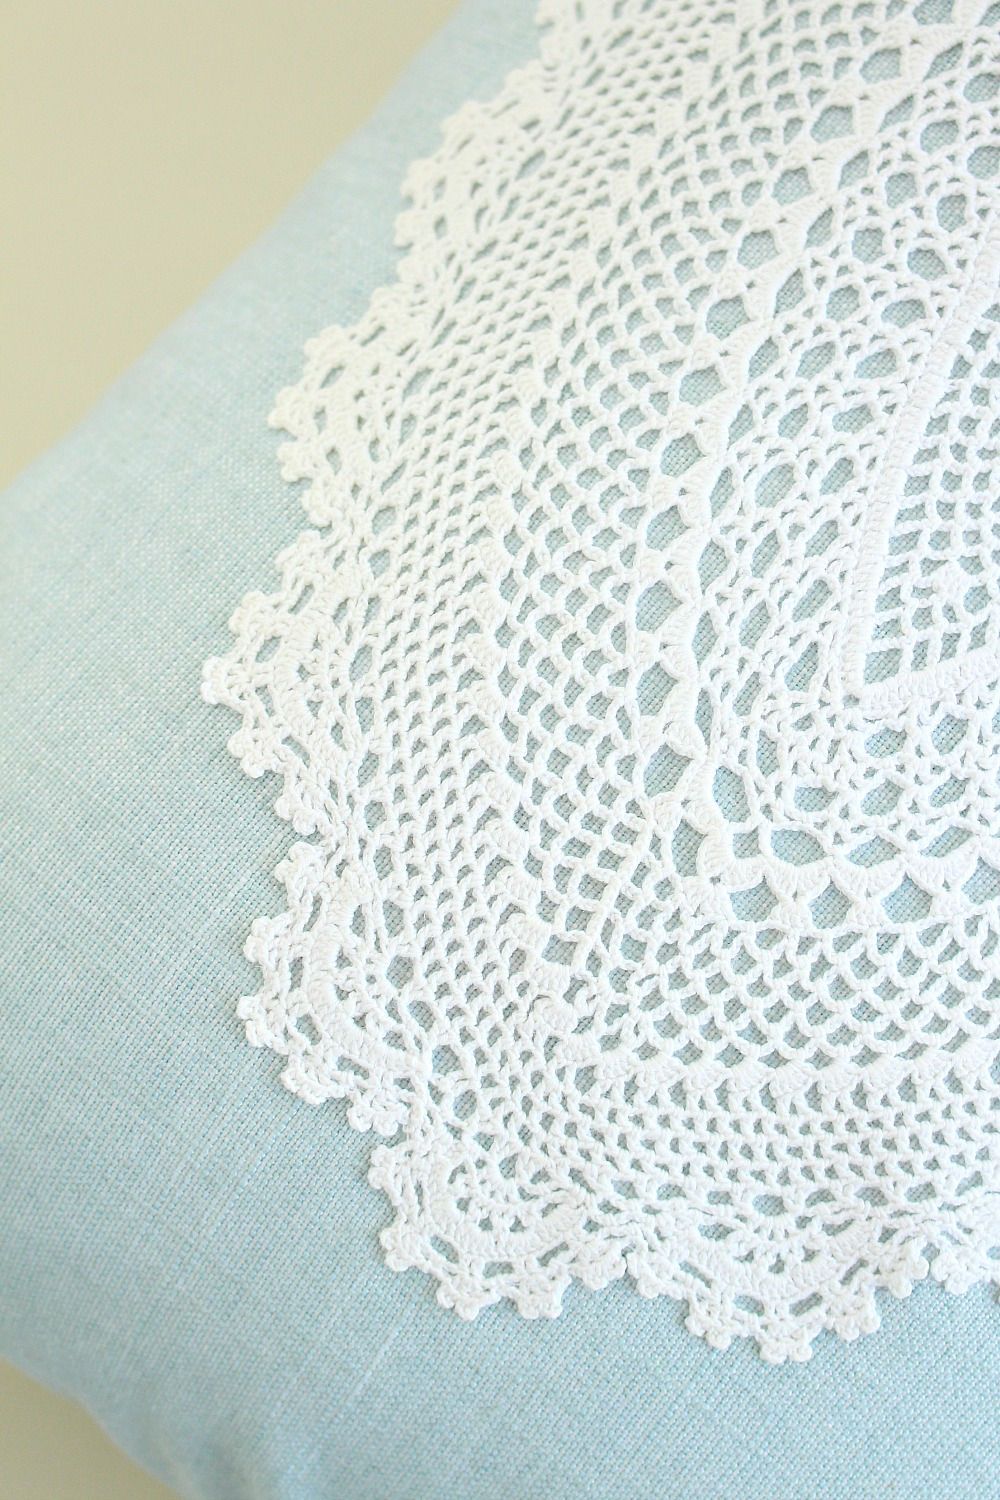 Make you own doily applique